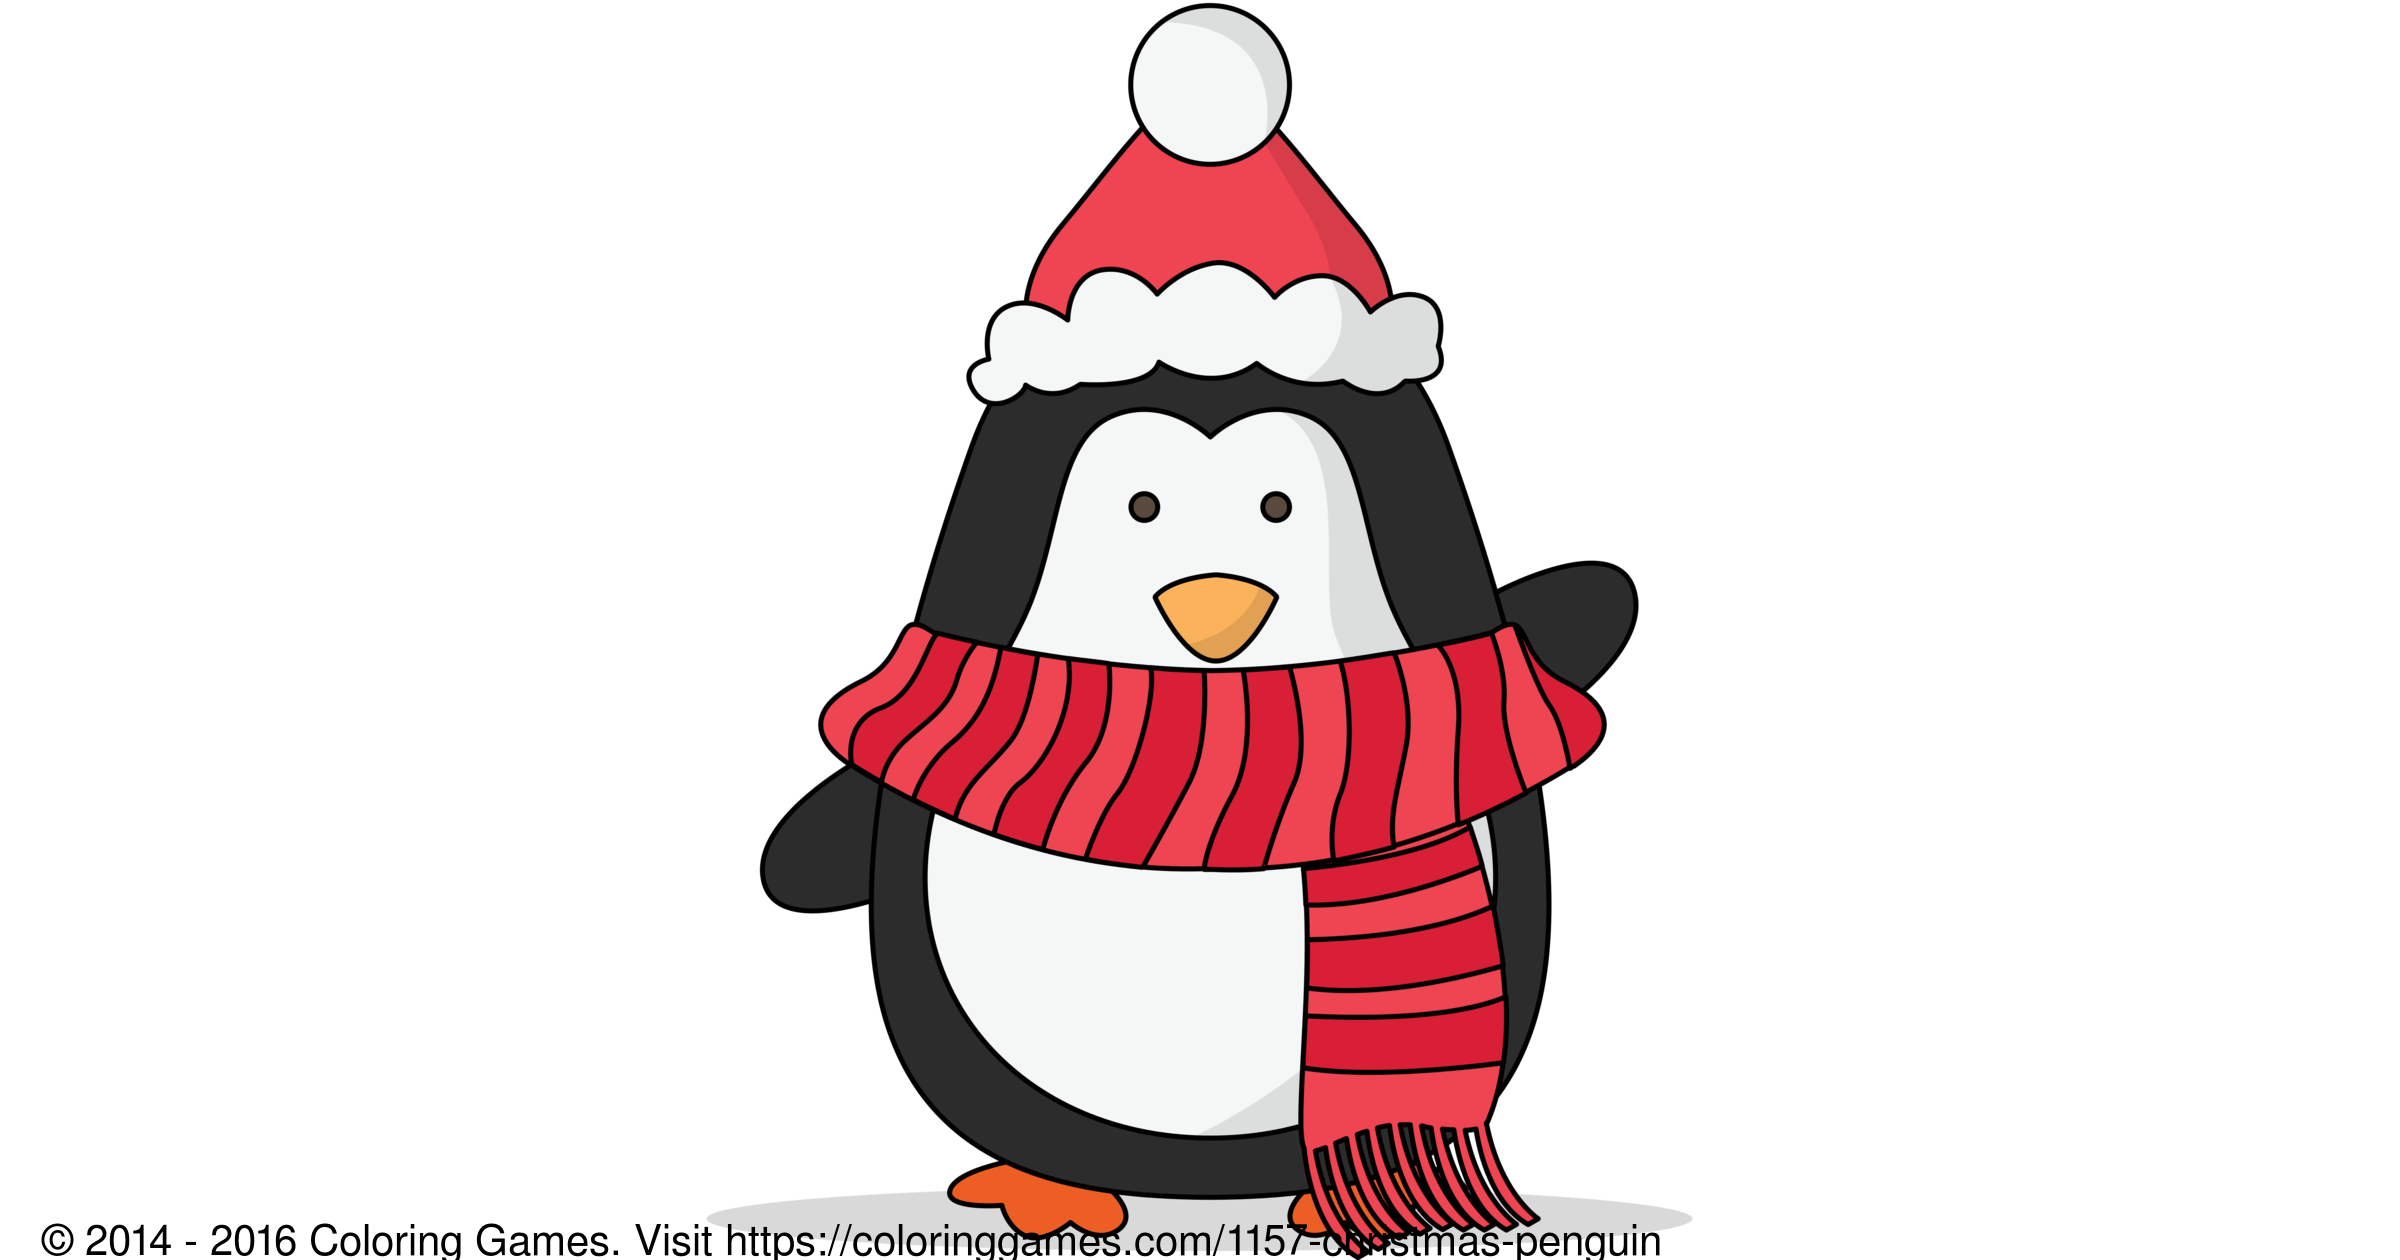 Christmas Penguin - Coloring Games and Coloring Pages